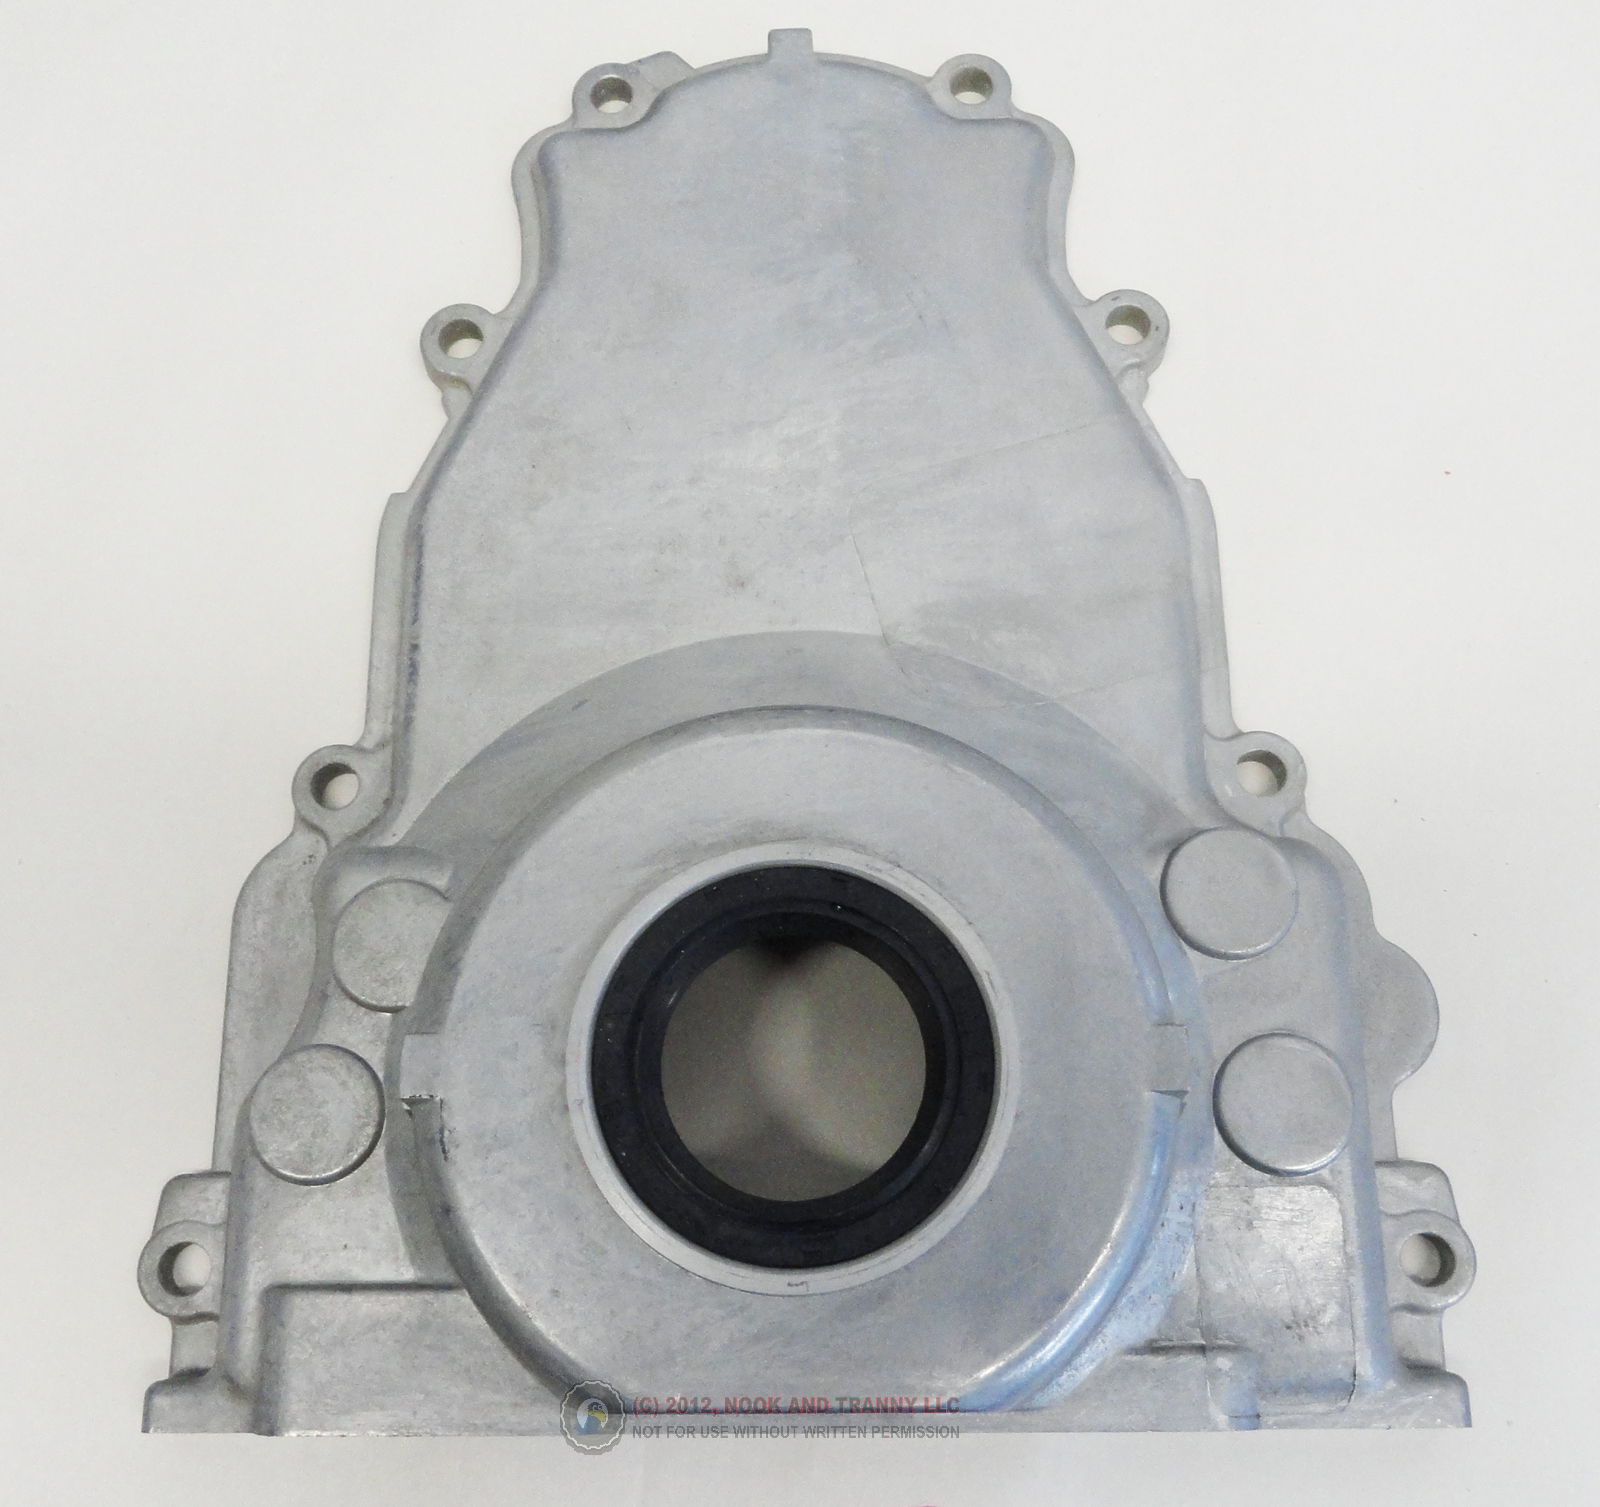 Ls1 Engine Dry Weight: Nook And Tranny: Timing Cover, W/ Seal, LS1/LS6/LQ4/LQ9 W